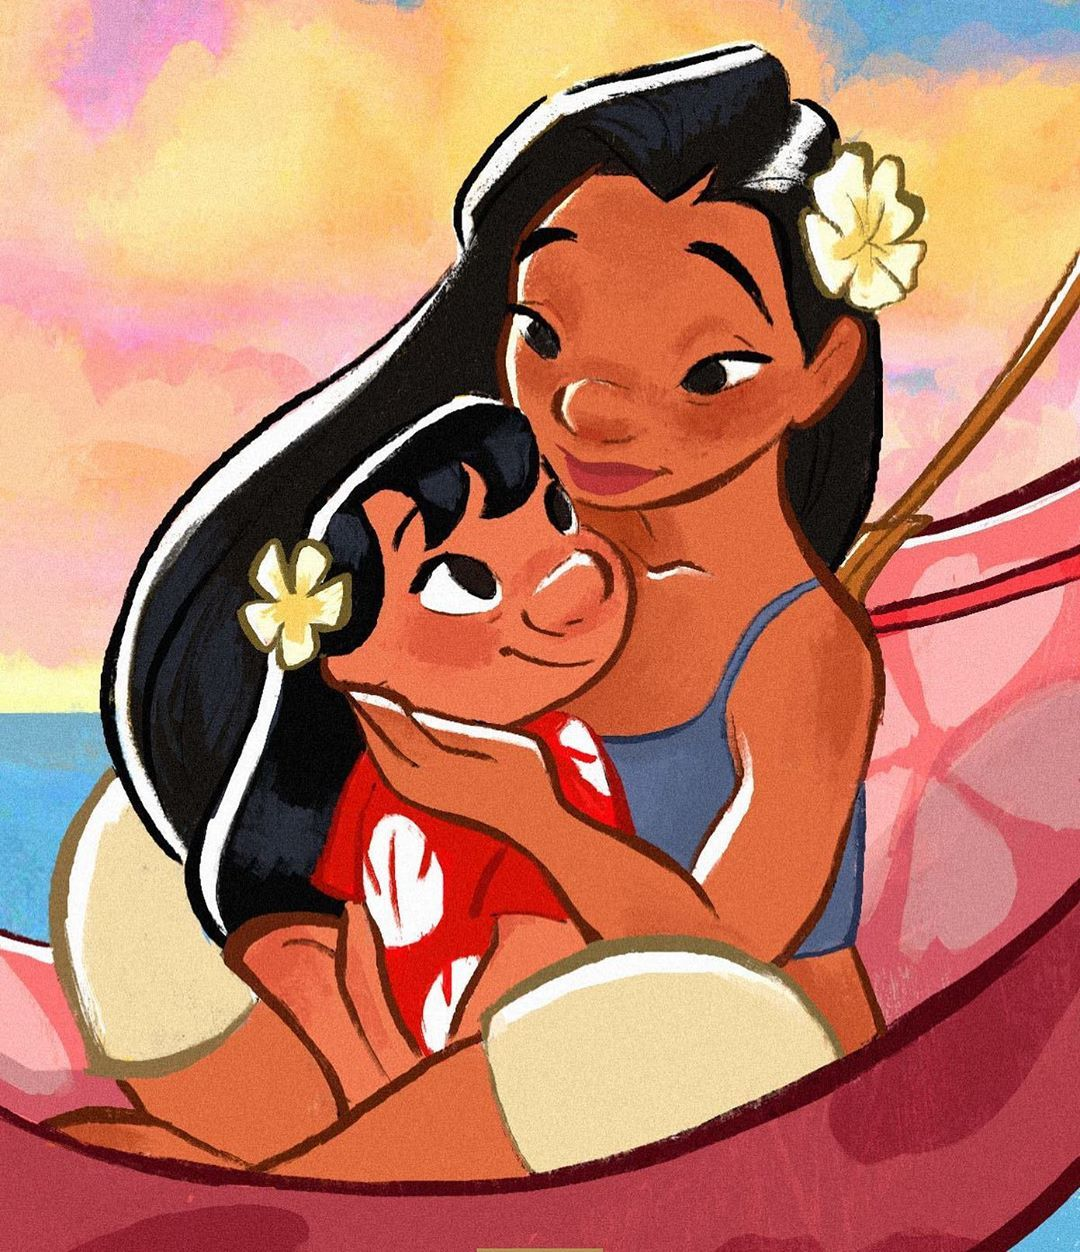 """Oh My Disney (@ohmydisney) on Instagram: """"Here are the reasons why Nani is the sister I stan: • Raises Lilo like her own 🤗 • Works hard to…"""""""